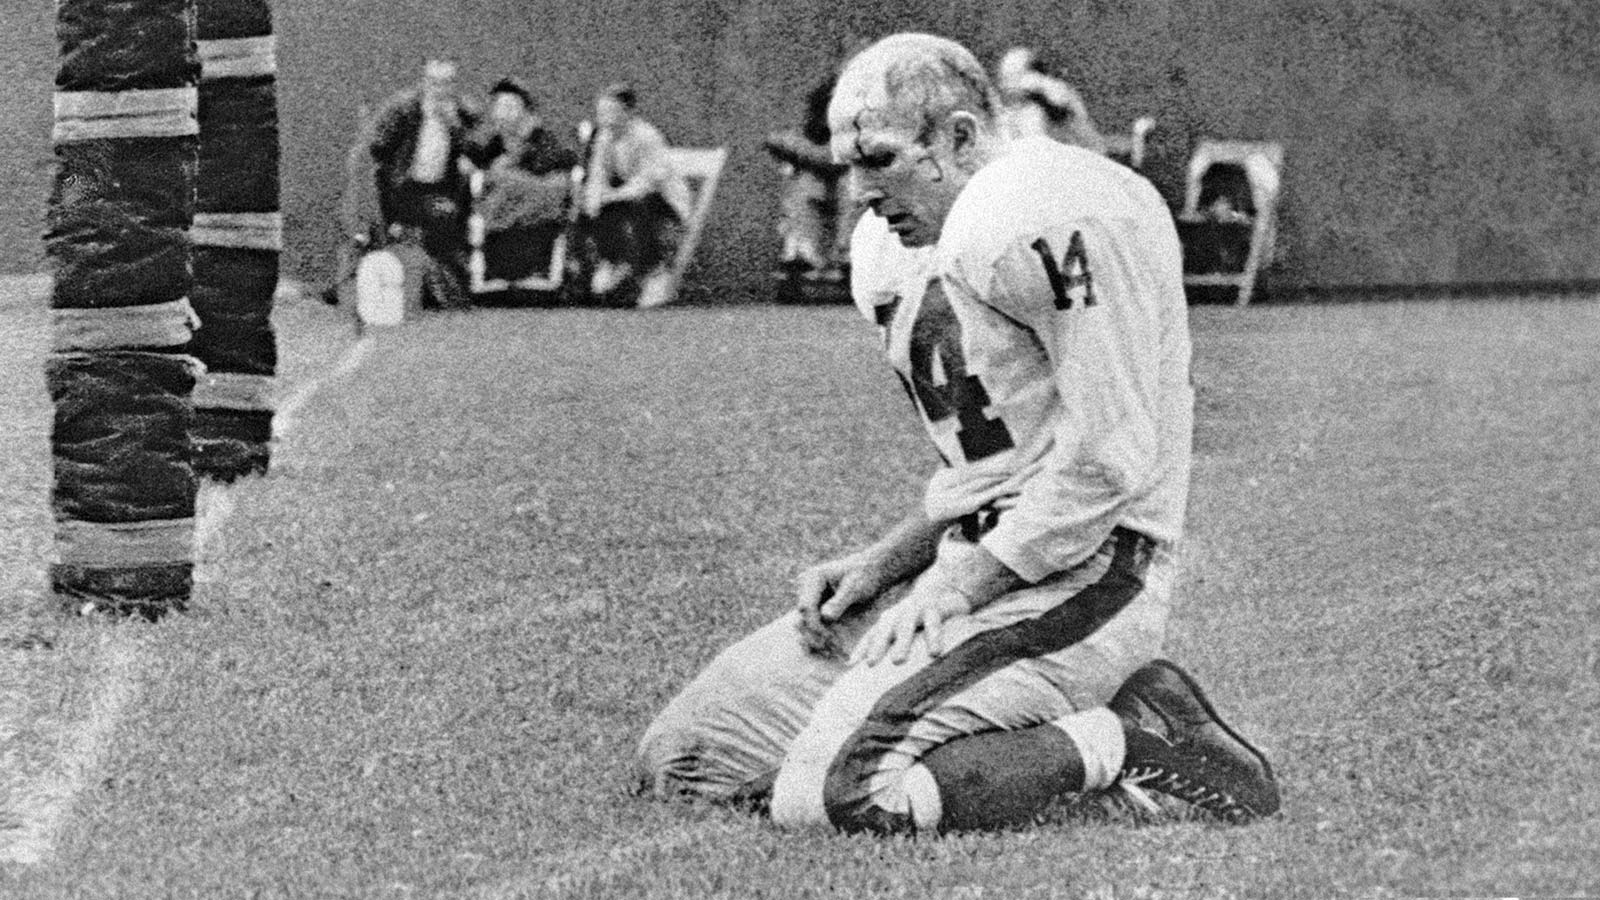 Hall of Fame quarterback YA Tittle dies at age 90